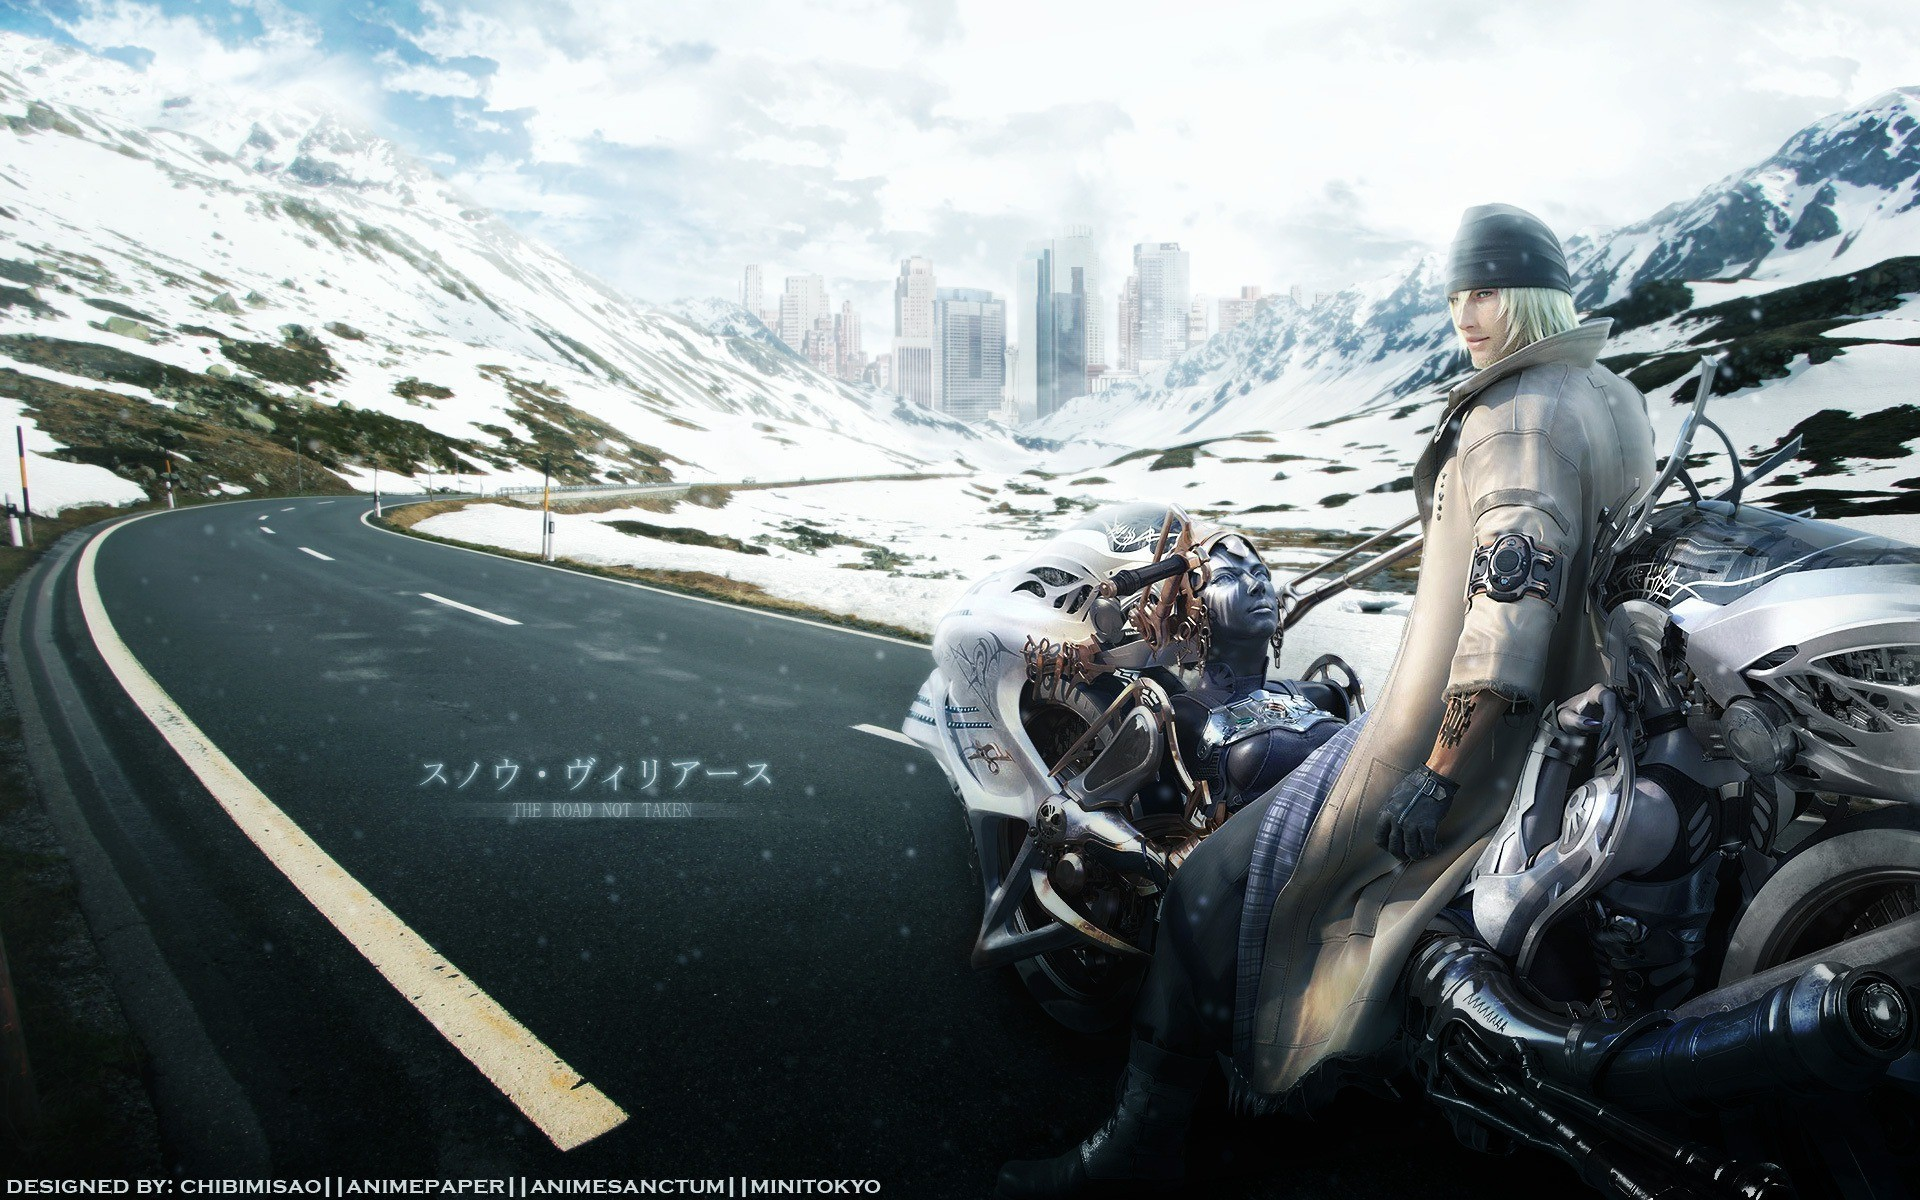 Motorcyclist in a role-playing game Final Fantasy VI